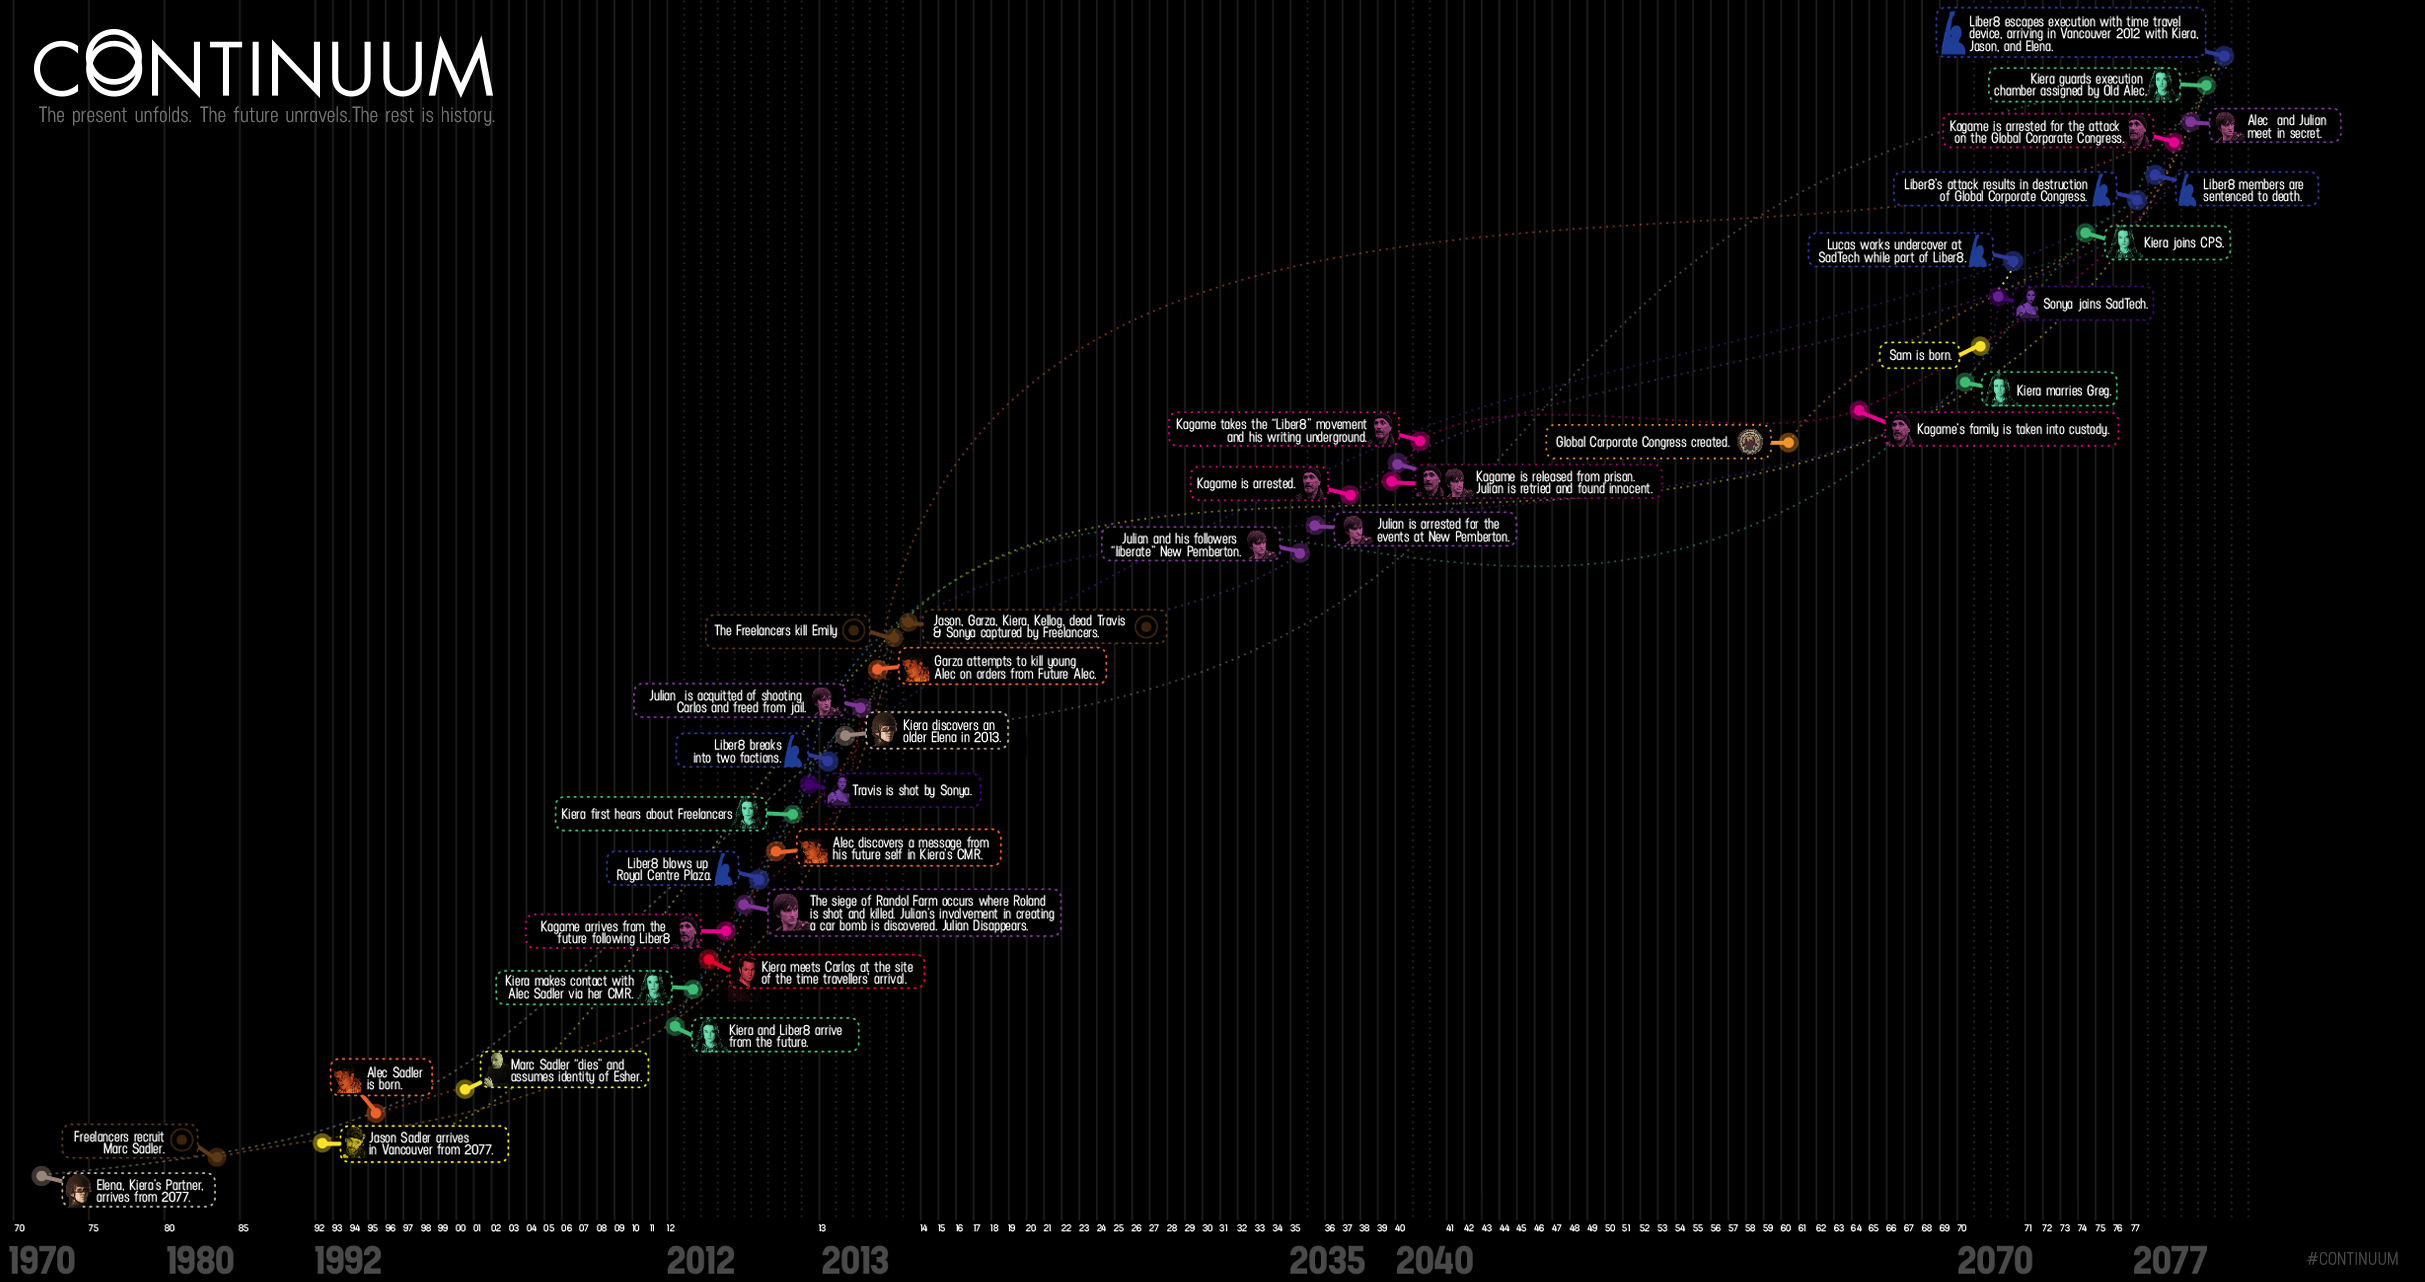 Continuum-Timelinegraphic-Full